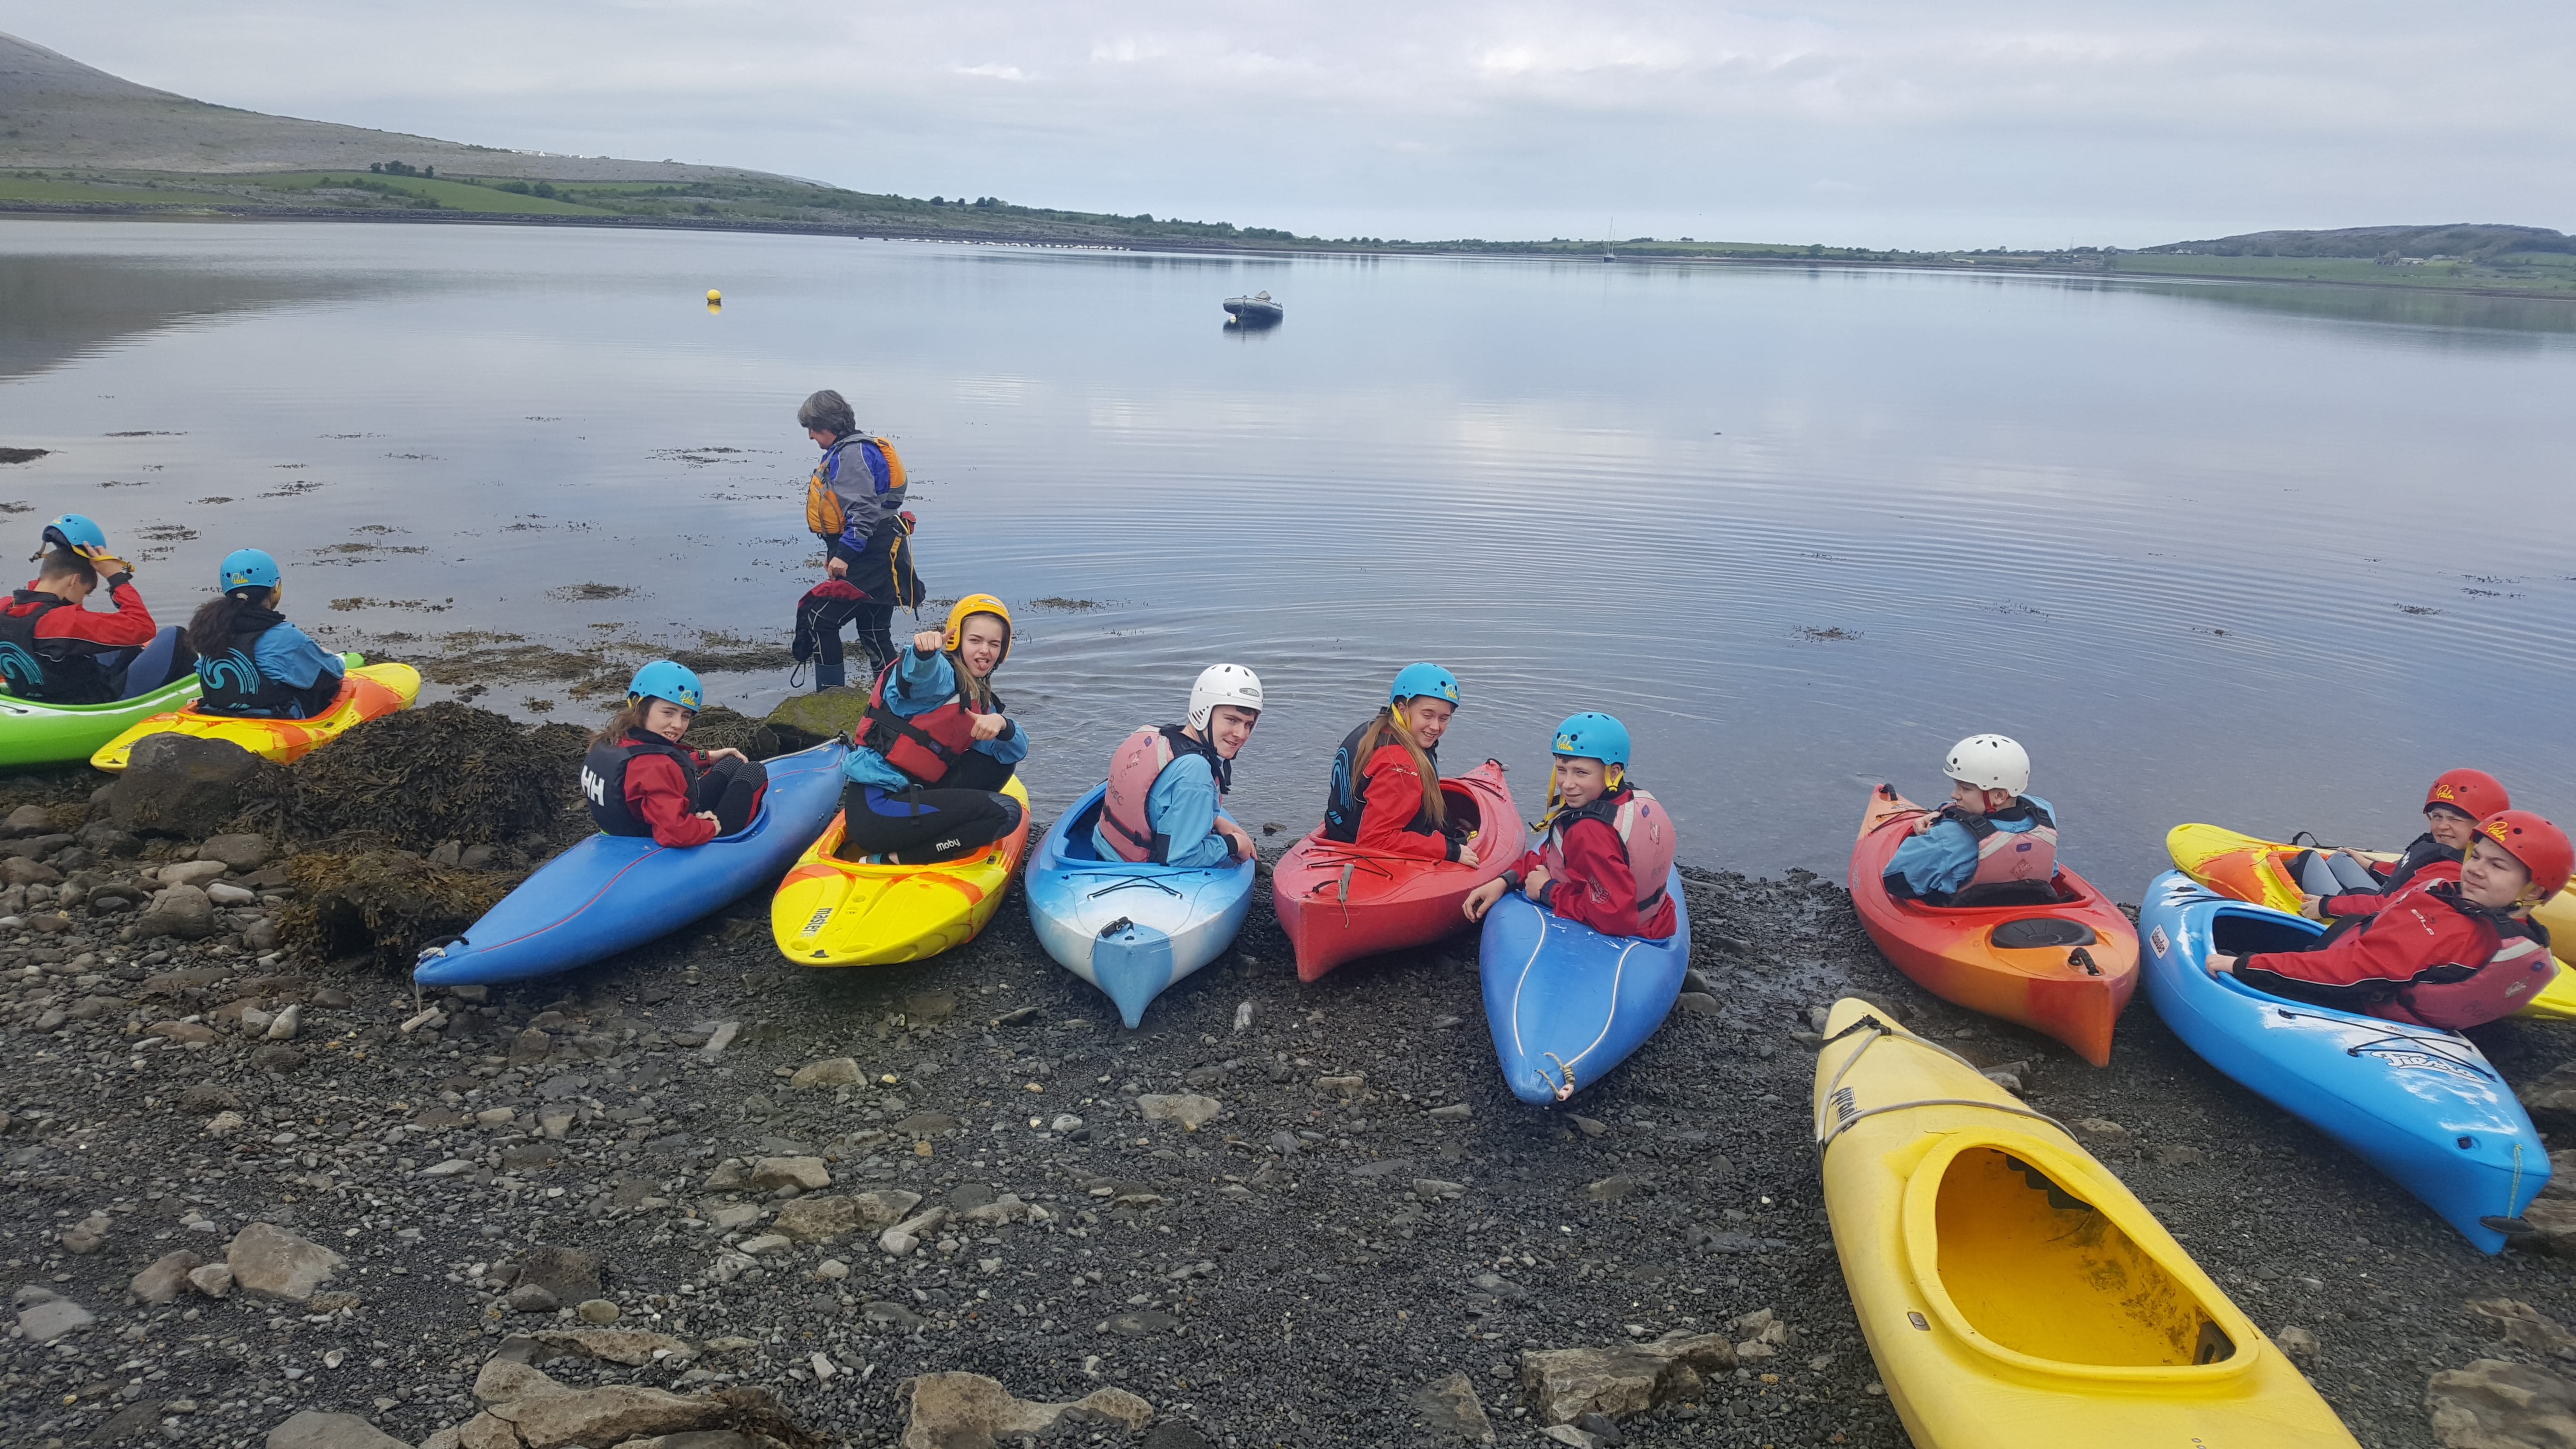 16th May 2018: Desmond College 1st Year Students on their Trip to the Burren